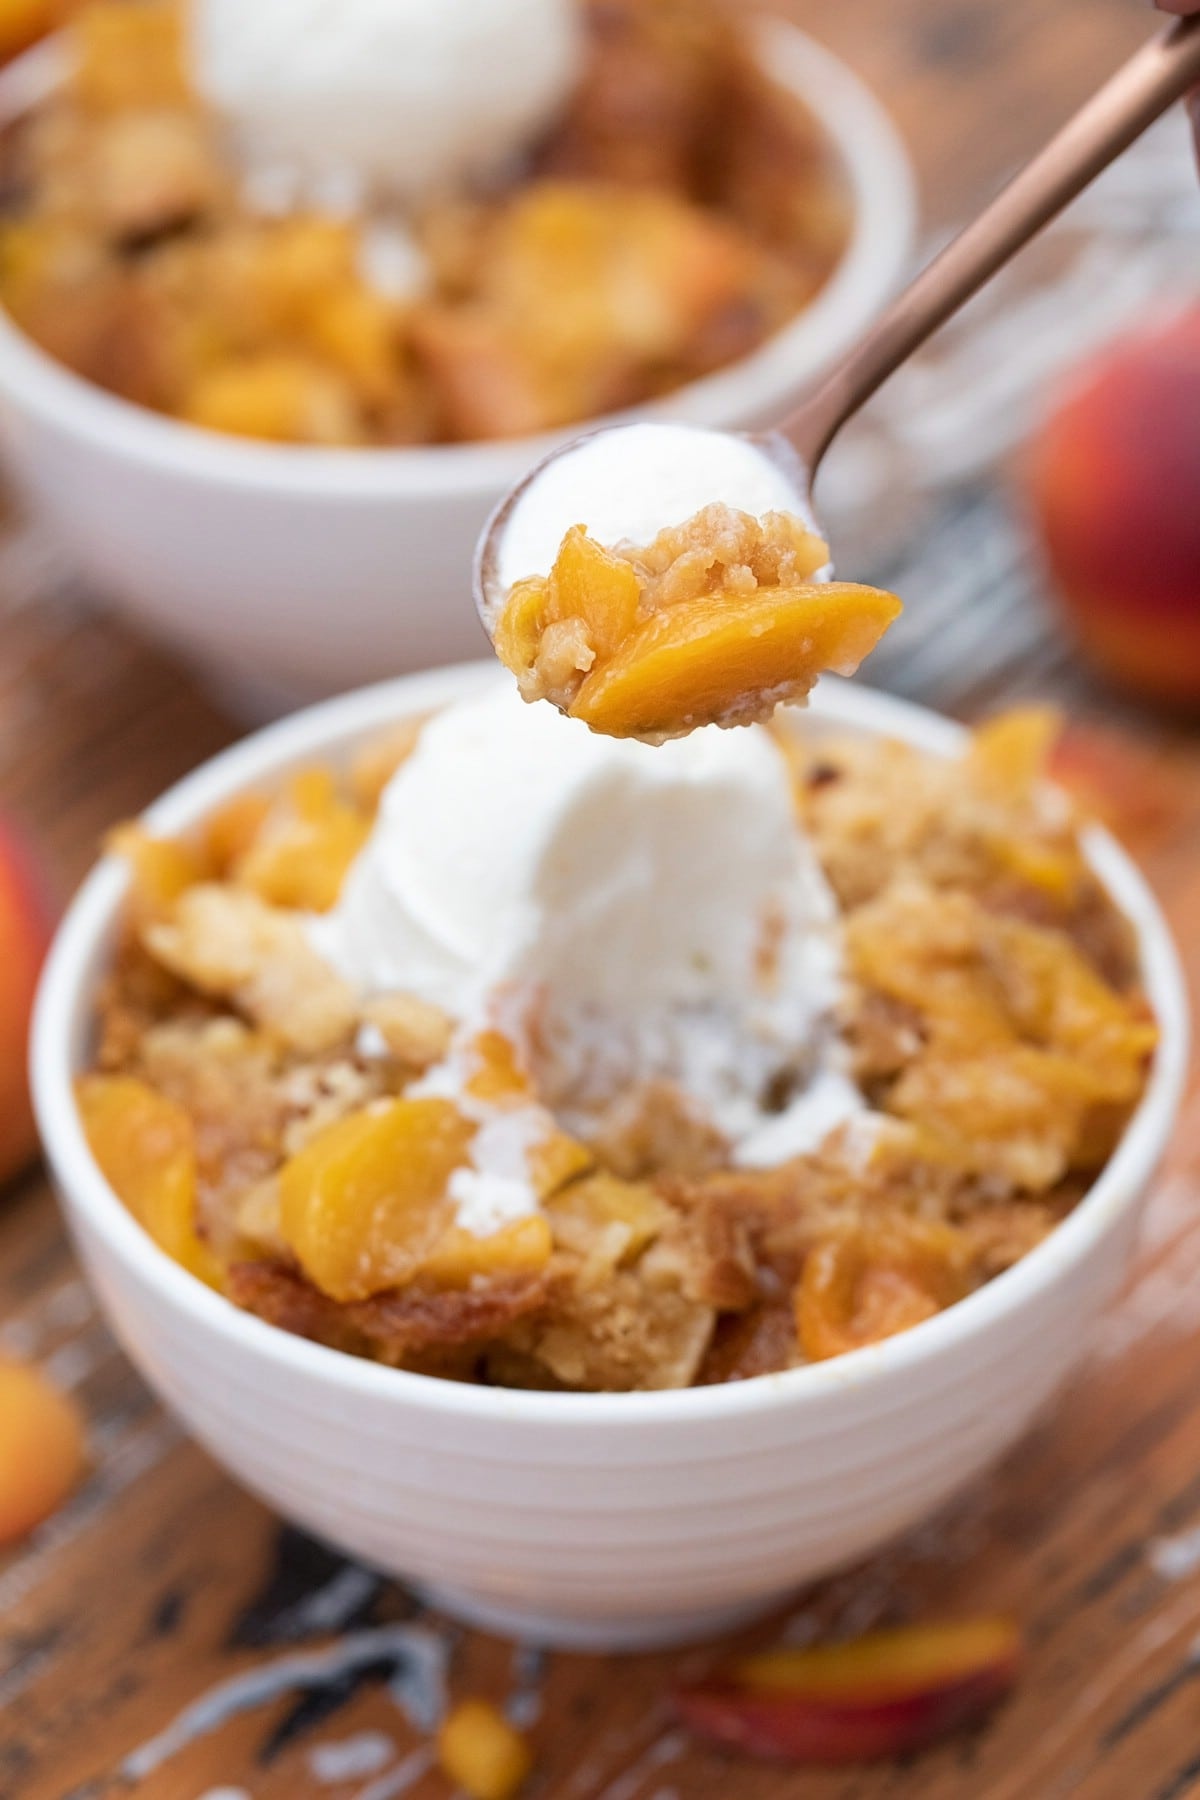 Spoon of cobbler with ice cream hovering above a bowl of cobbler on table